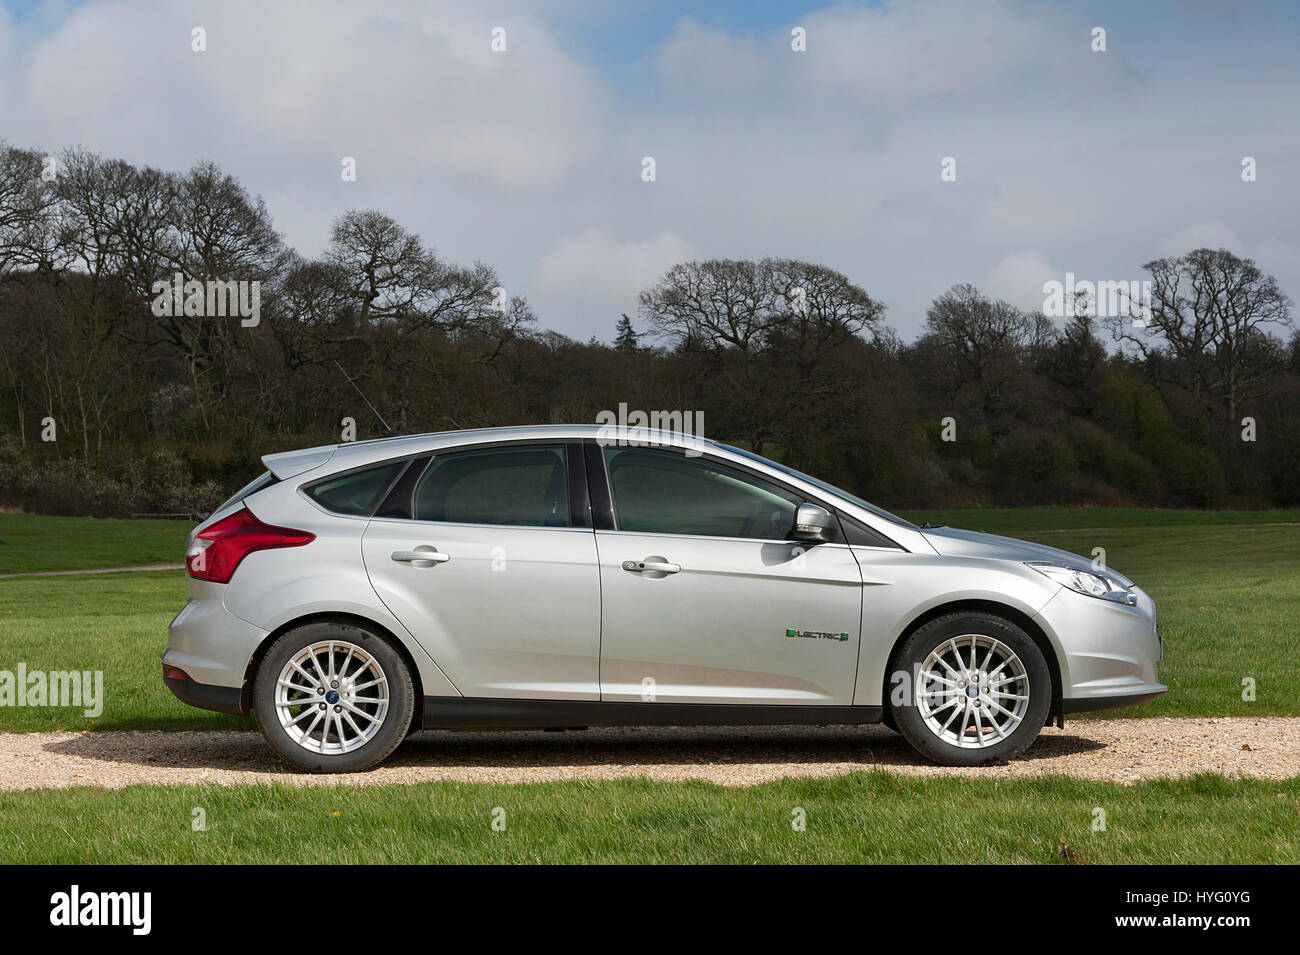 2014 Ford Focus Electric Car Stock Photo 137420292 Alamy Motor